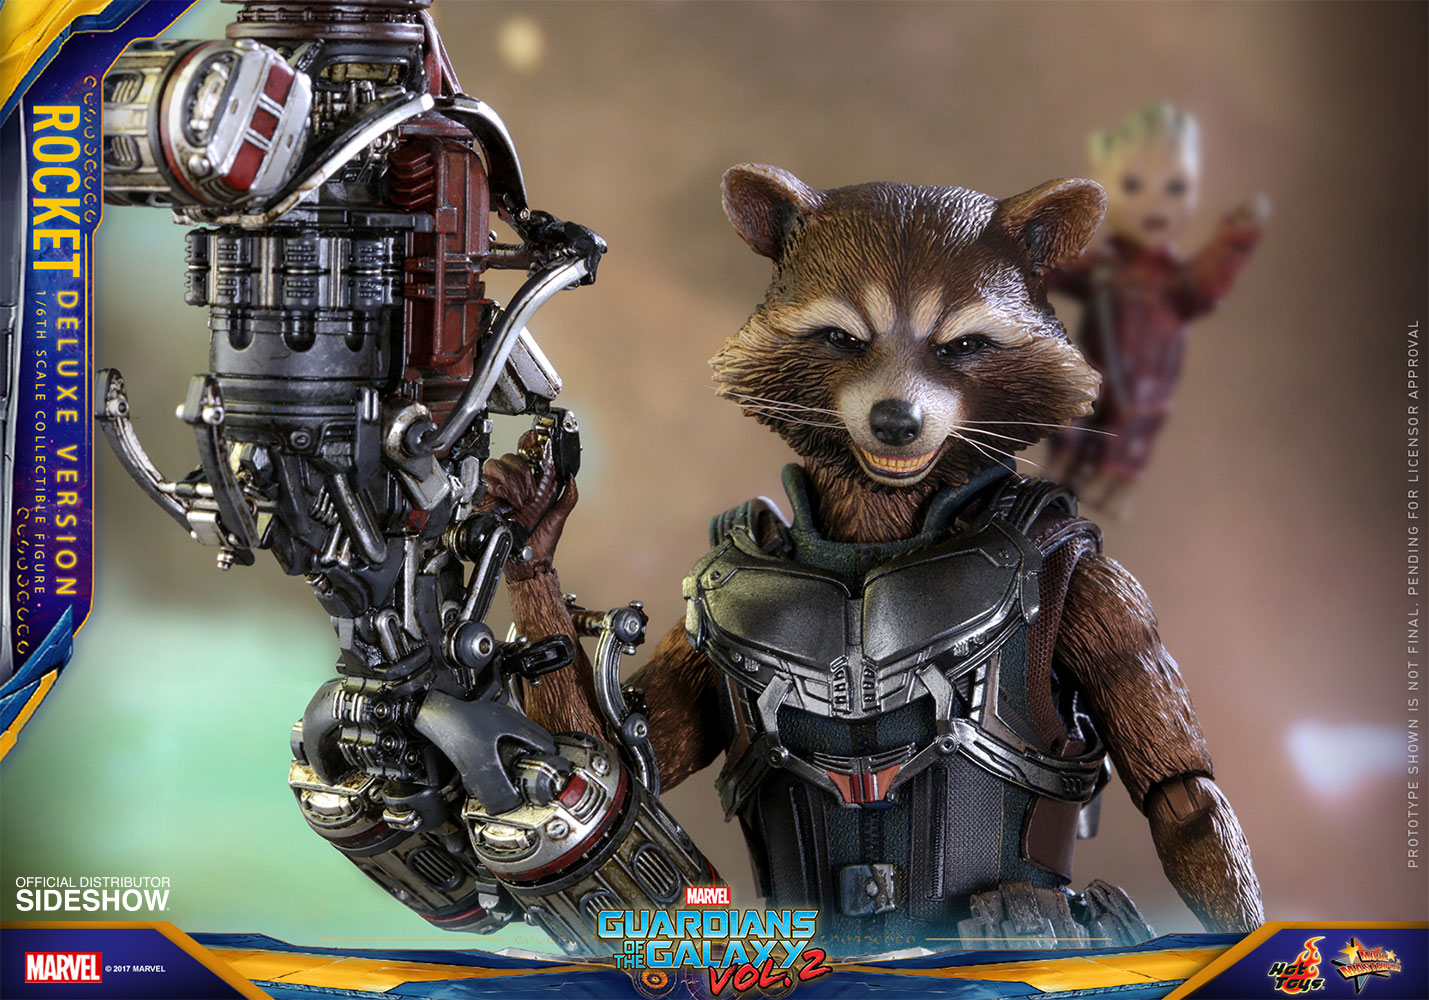 Collection Marvel de Logan - Page 43 Marvel-guardians-of-the-galaxy-vol-2-rocket-deluxe-version-sixth-scale-hot-toys-902965-19